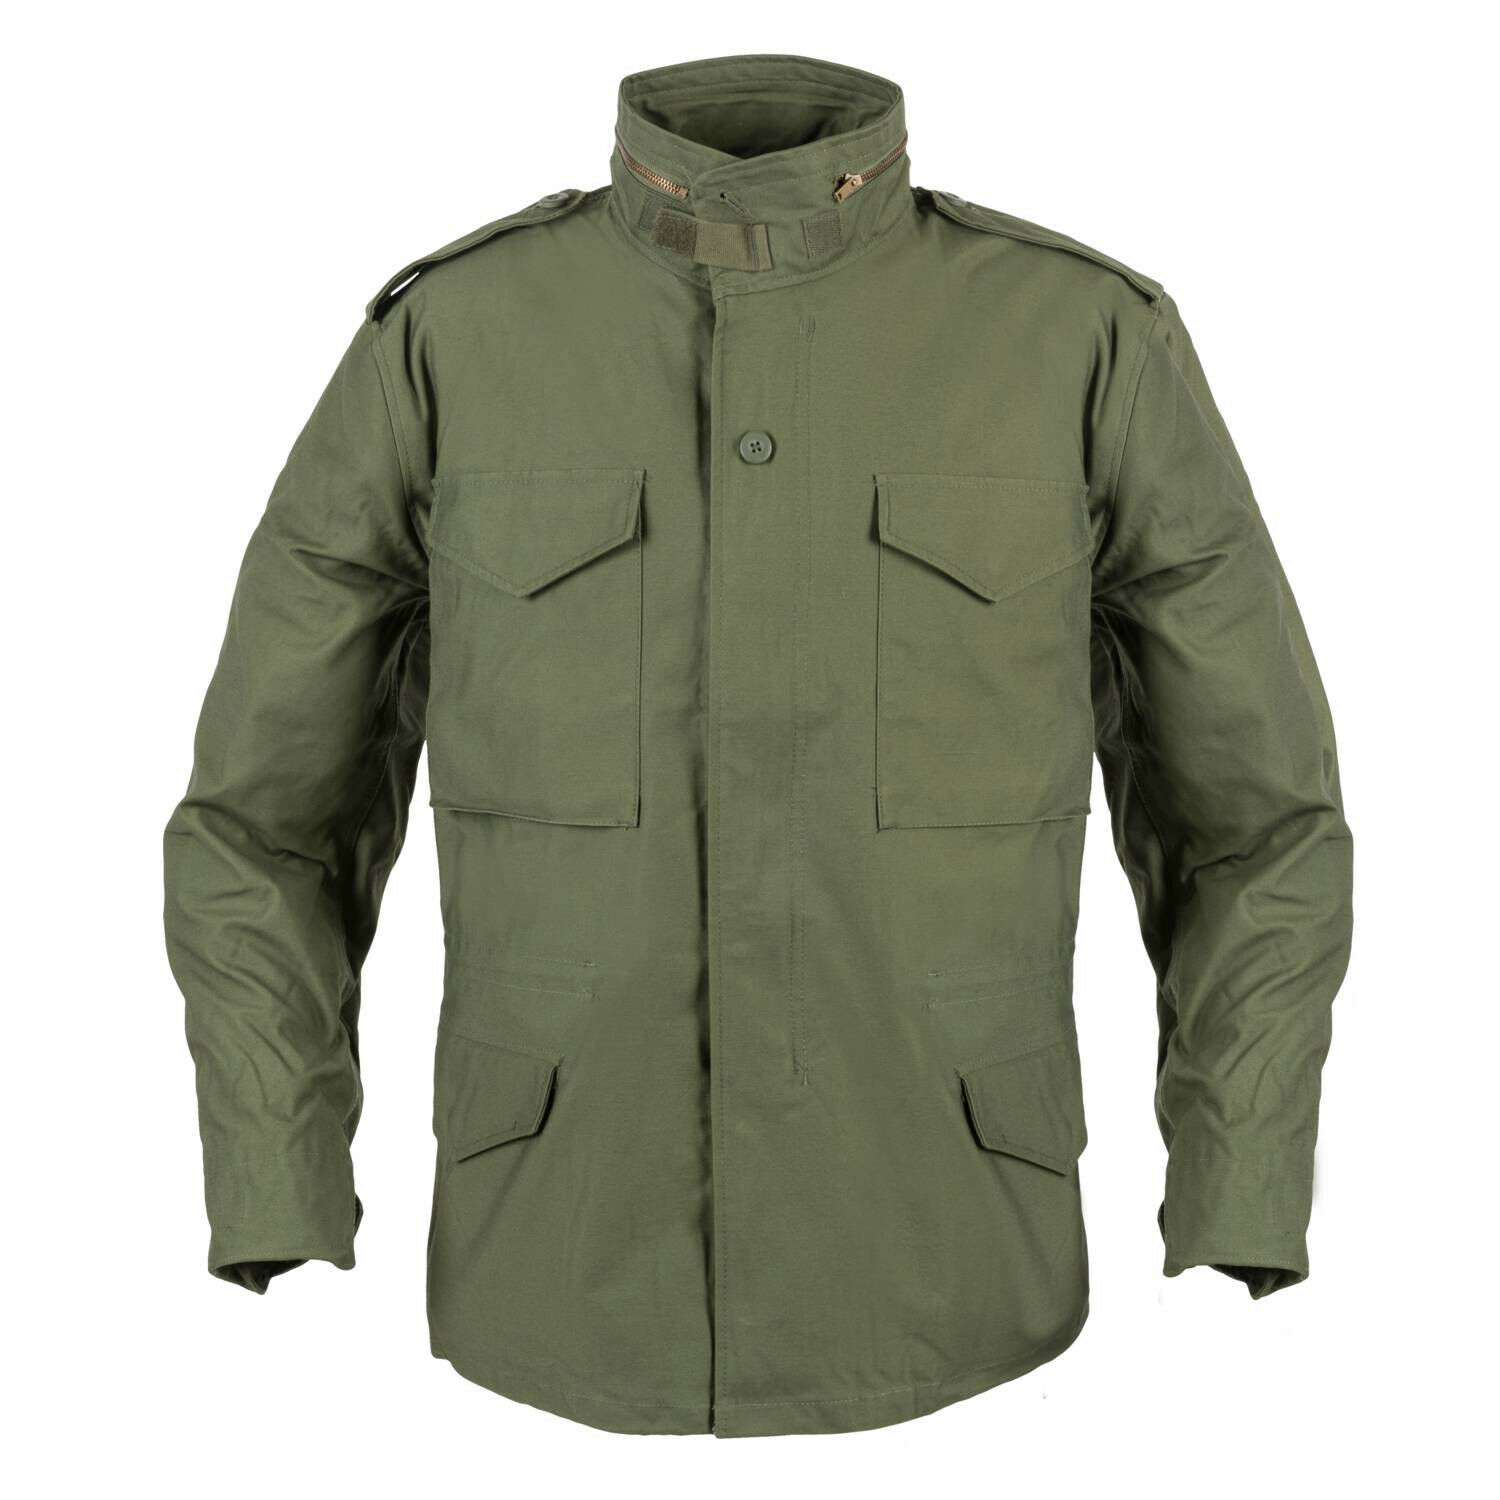 Helikon TEX US m65 Army Outdoor Giacca Parka con fodera verde oliva verde LARGE REGULAR